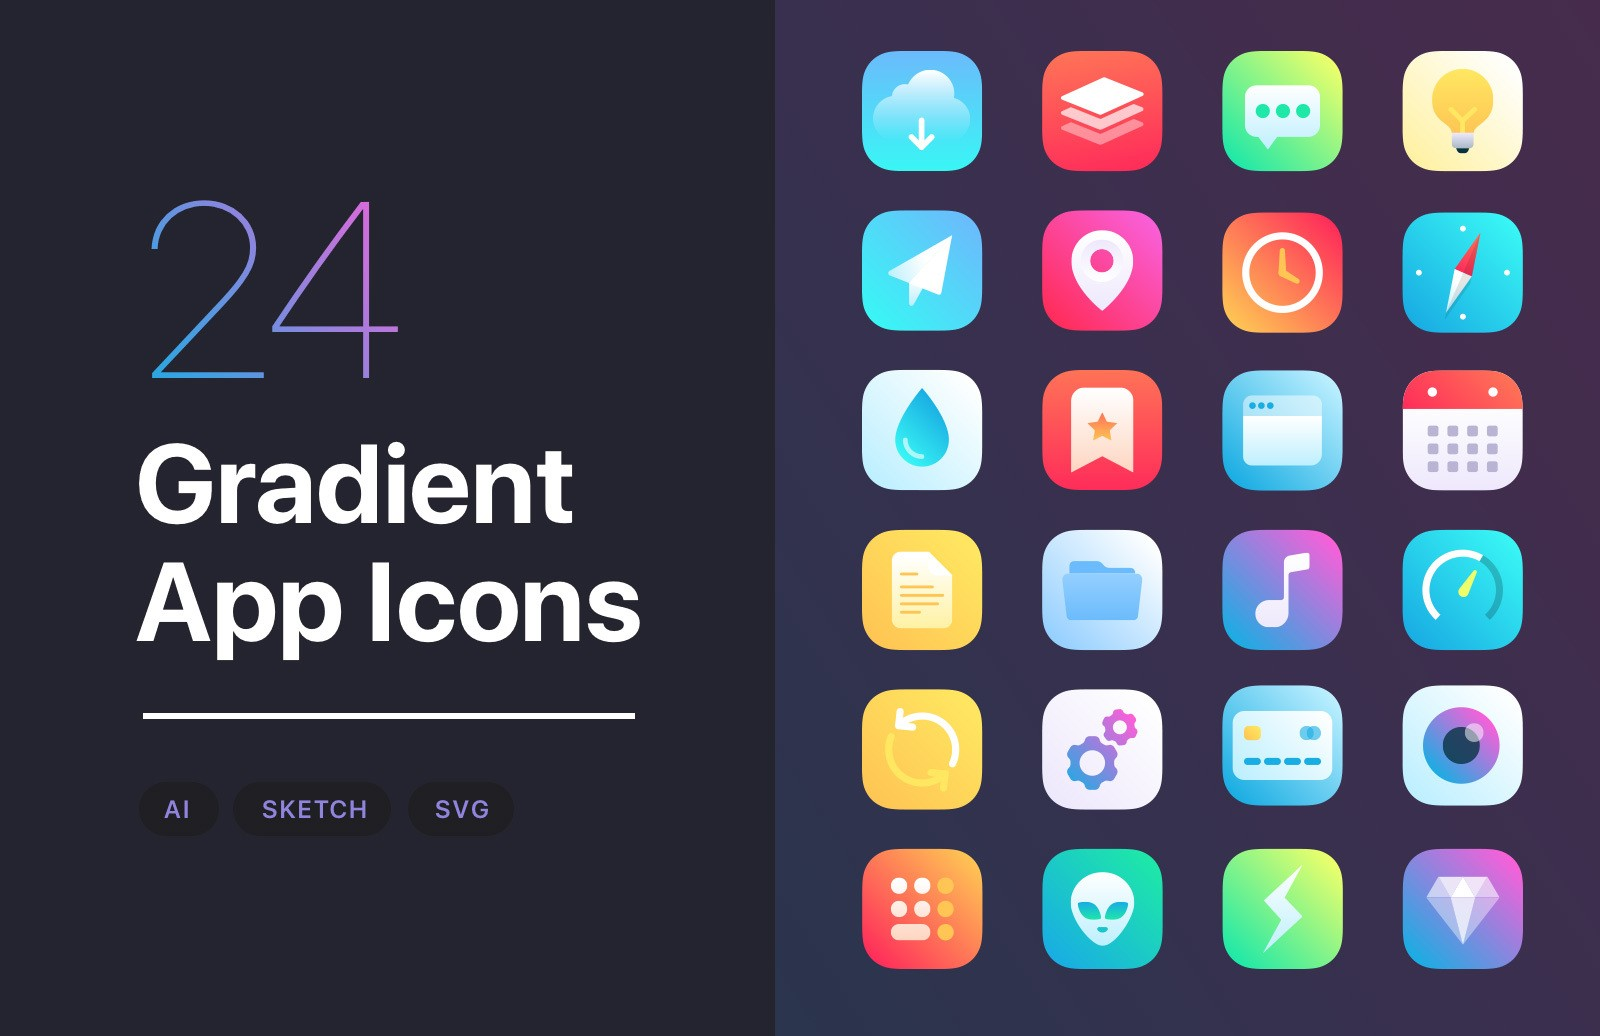 Gradient App Icons Preview